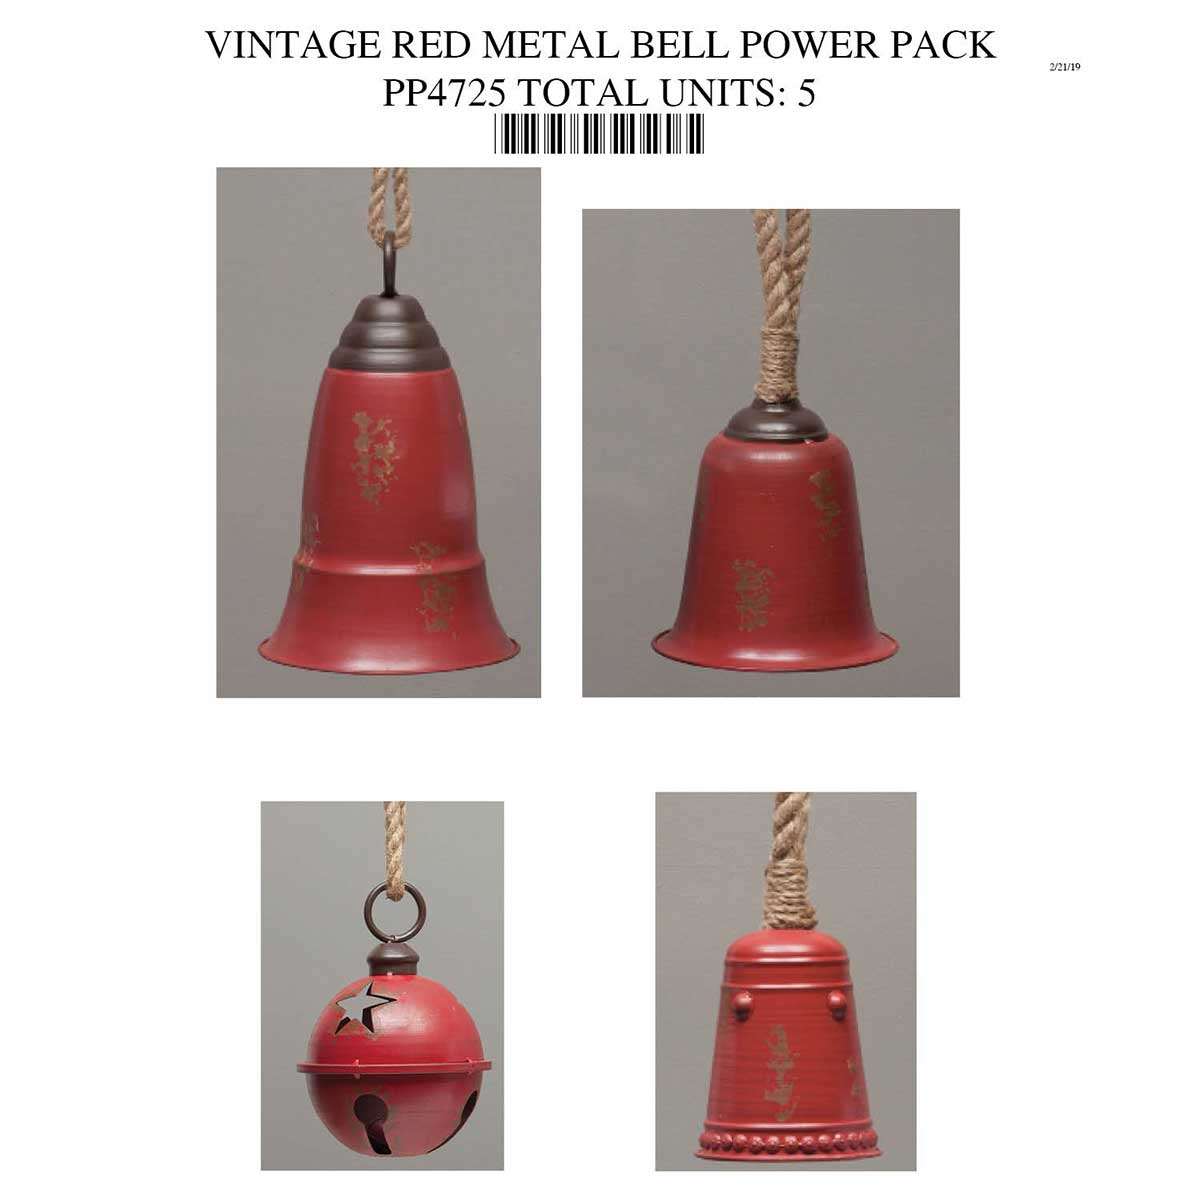 RED METAL BELL POWER PACK PP4725